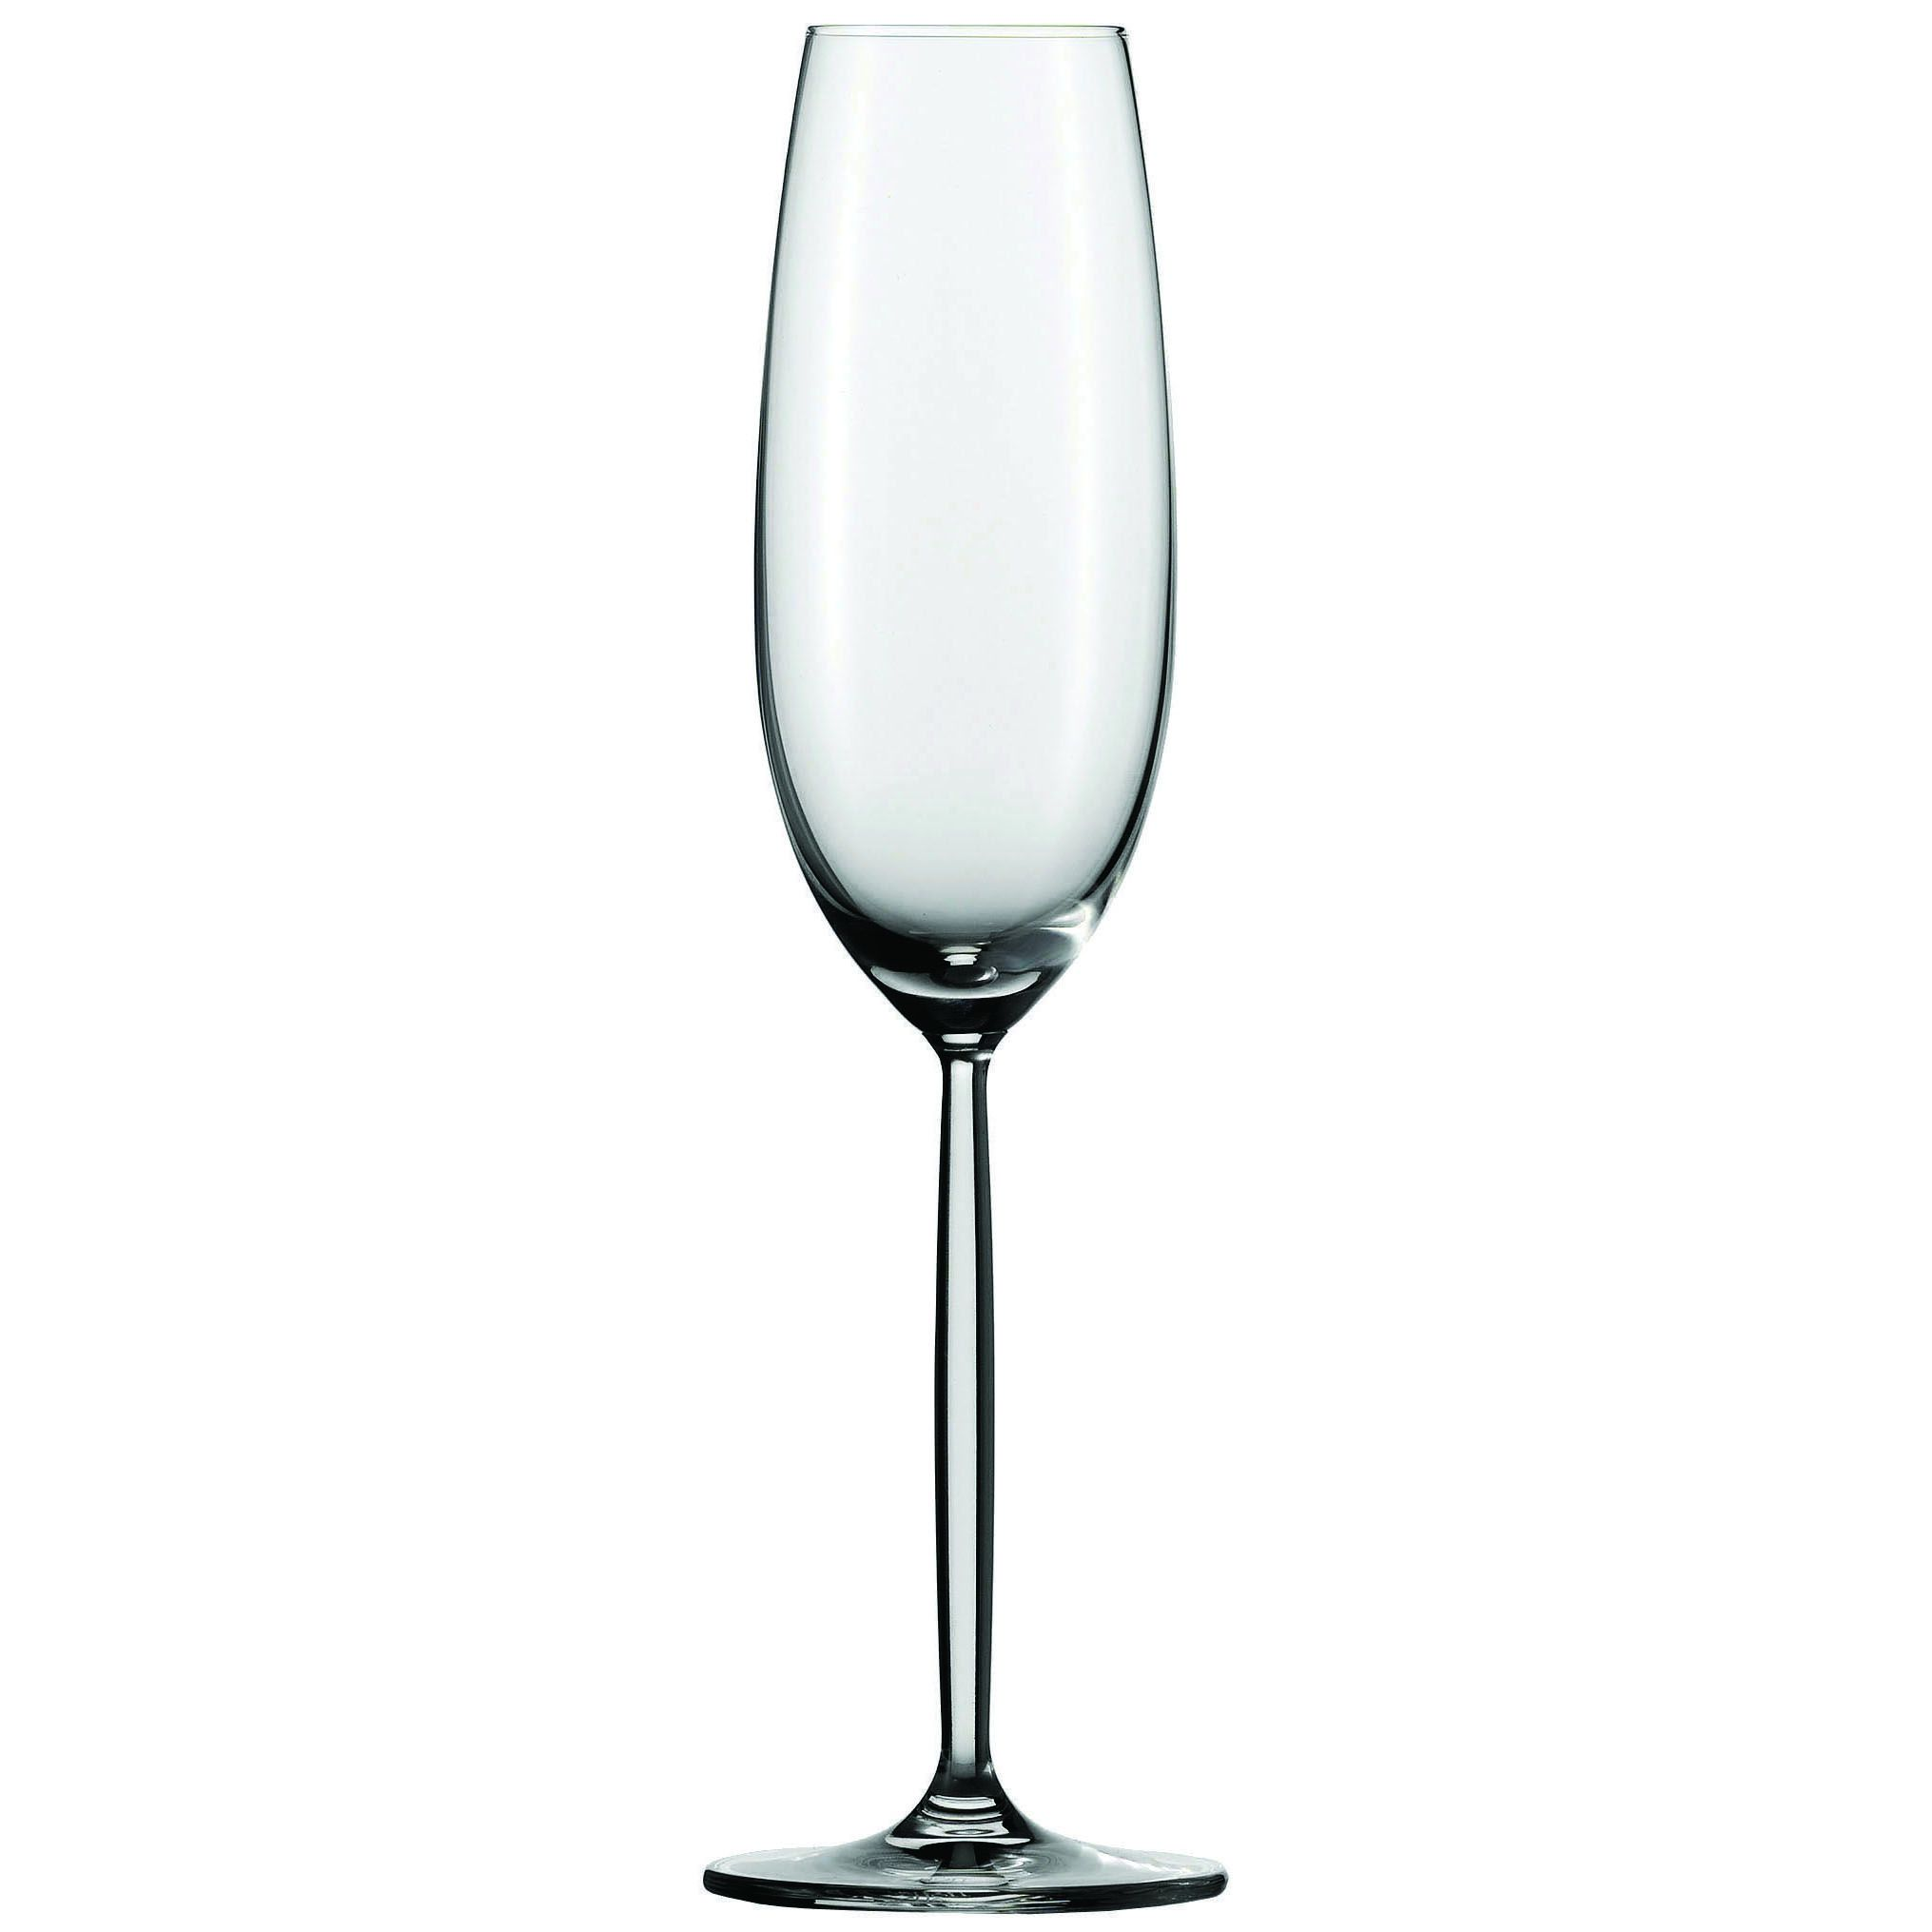 Schott Zwiesel Wine Glasses | Schott Glass Company | Commercial Tableware